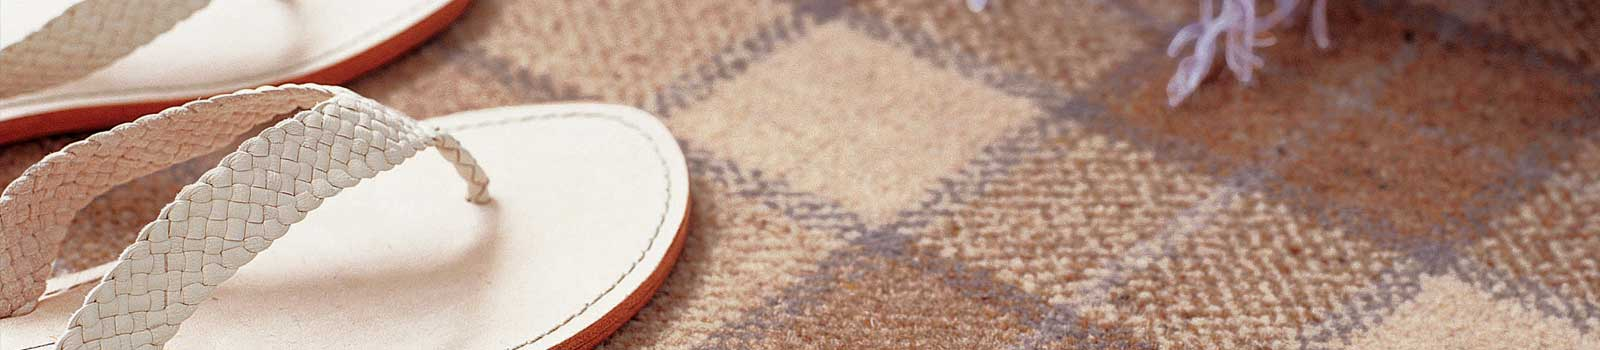 CarpetFitWales-Carpet-1600